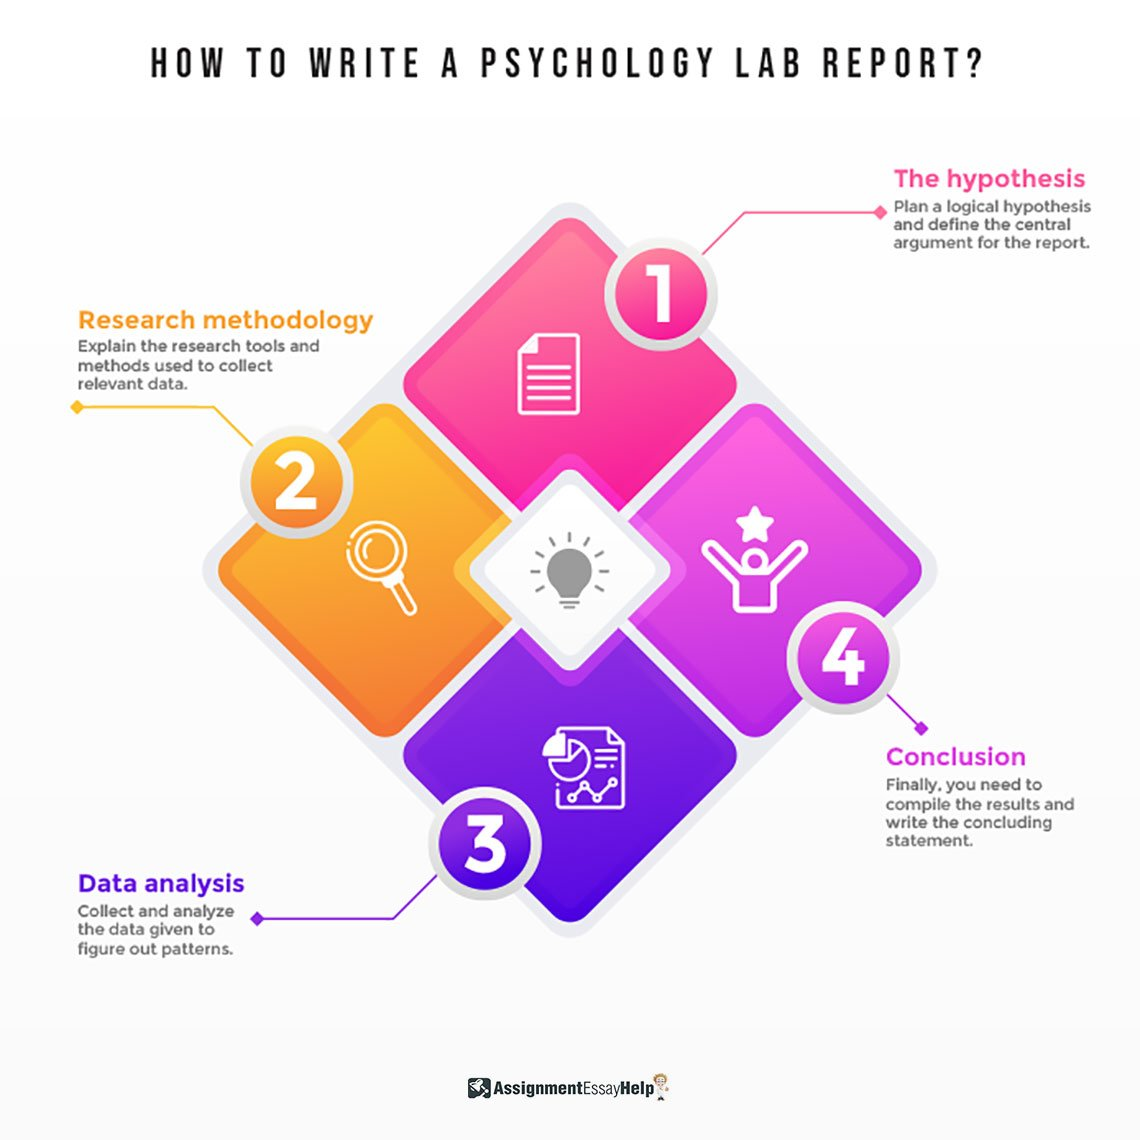 How to write a psychology lab report